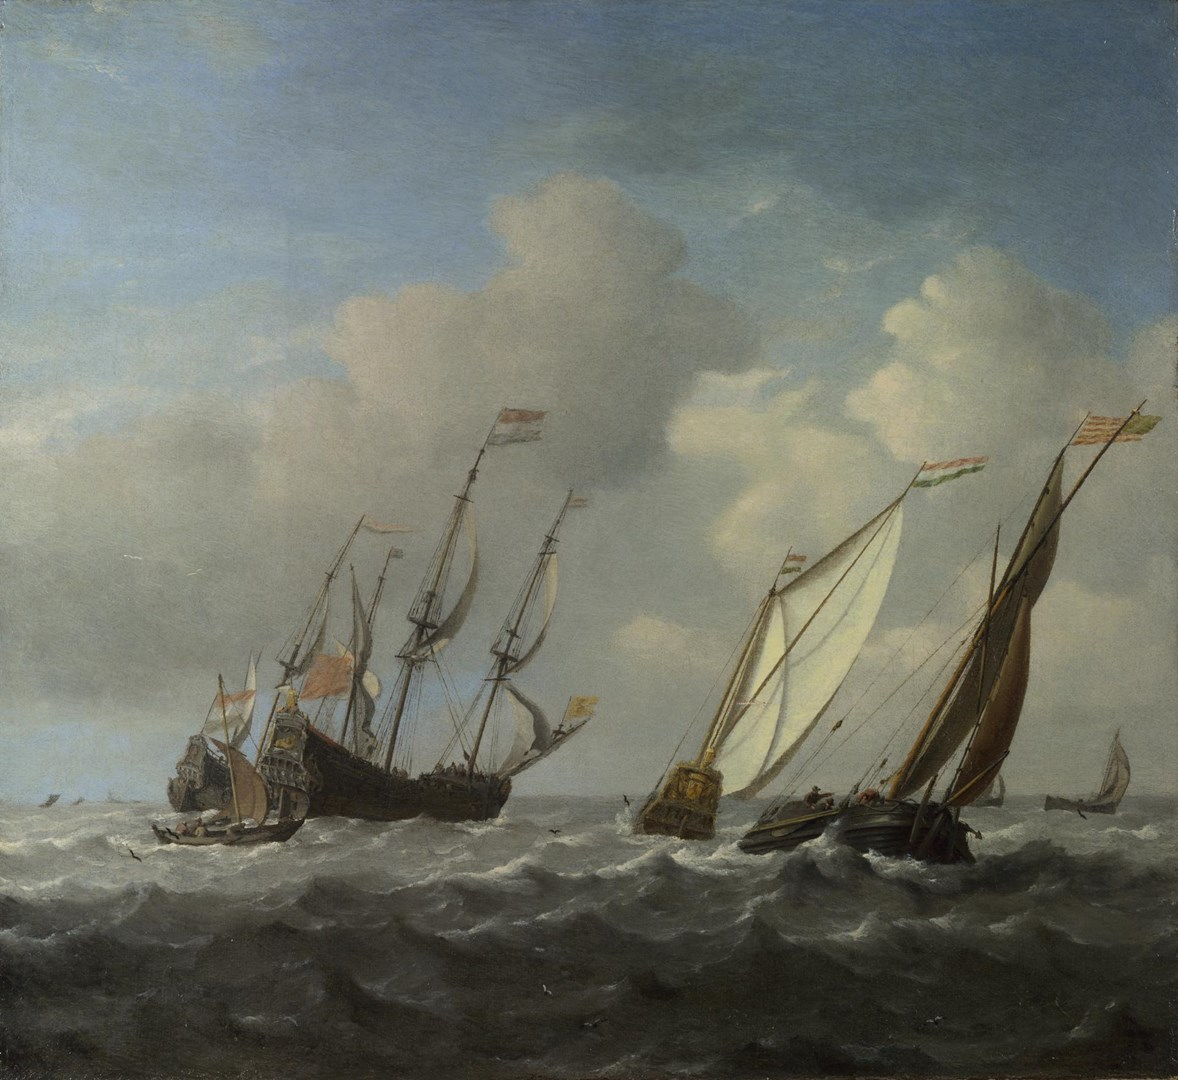 A Dutch Ship, a Yacht and Smaller Vessels in a Breeze by Willem van de Velde